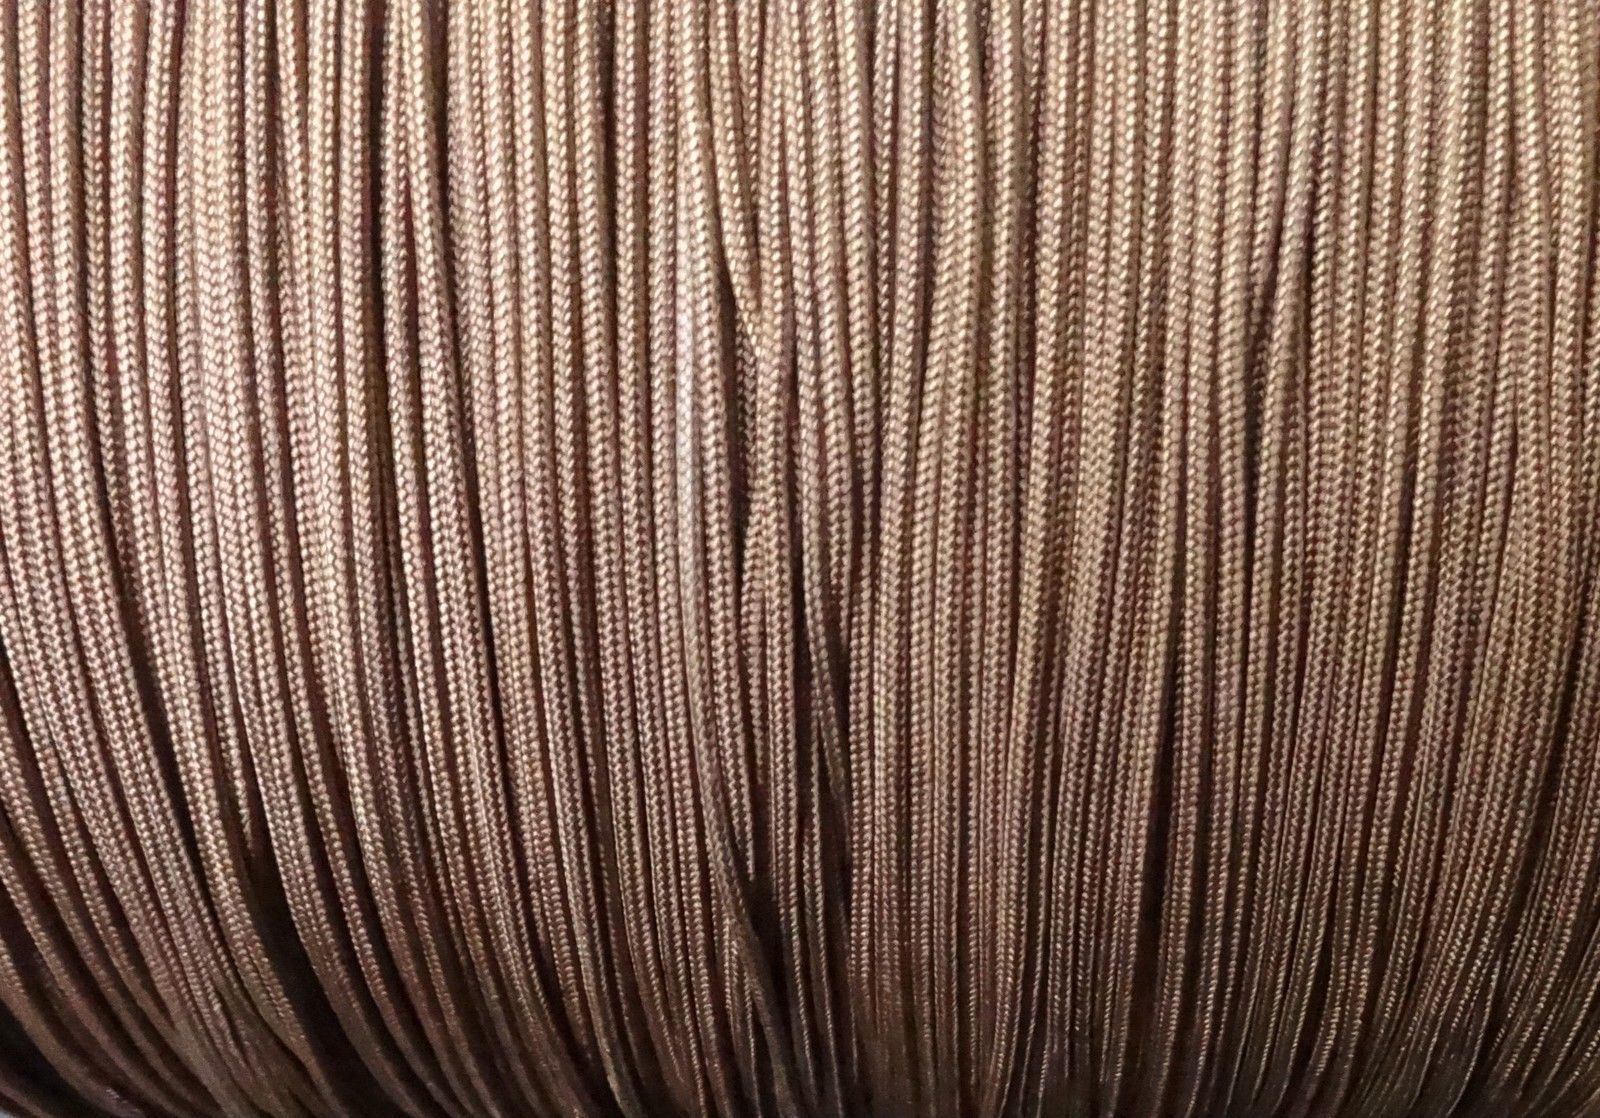 100 Yards :1.6 MM BROWNSTONE LIFT CORD for ROMAN shades &HORIZONTAL blind